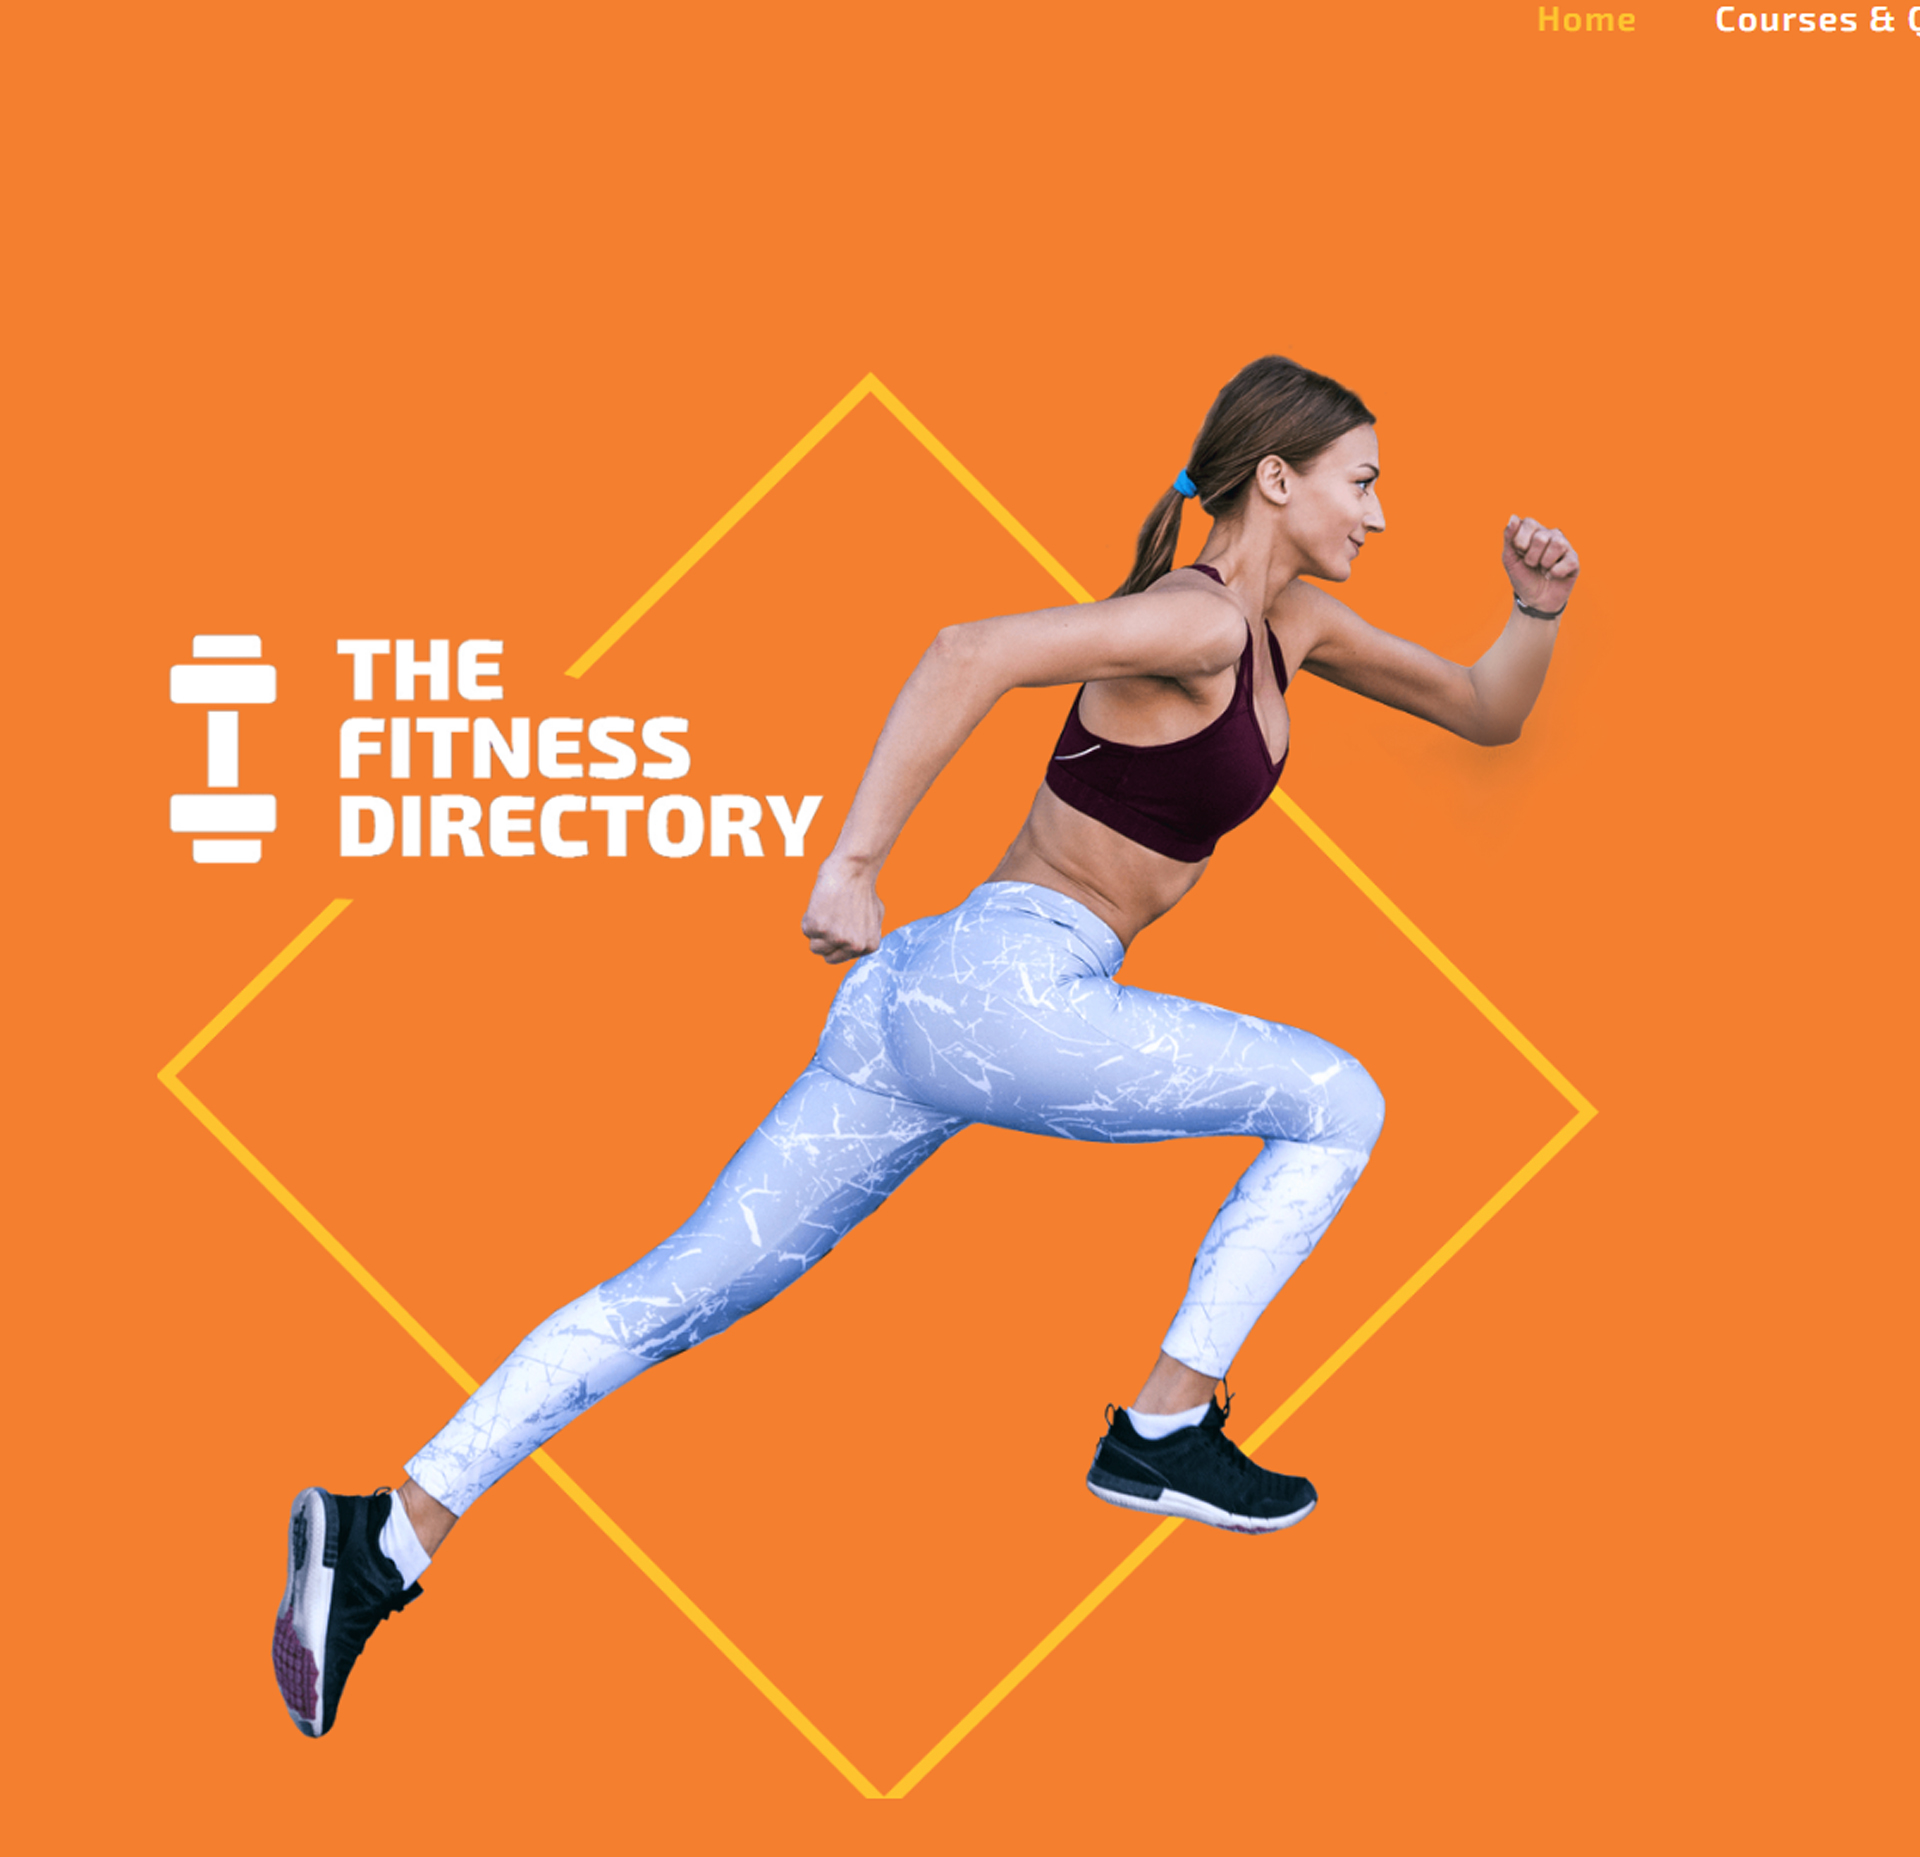 The Fitness Directory